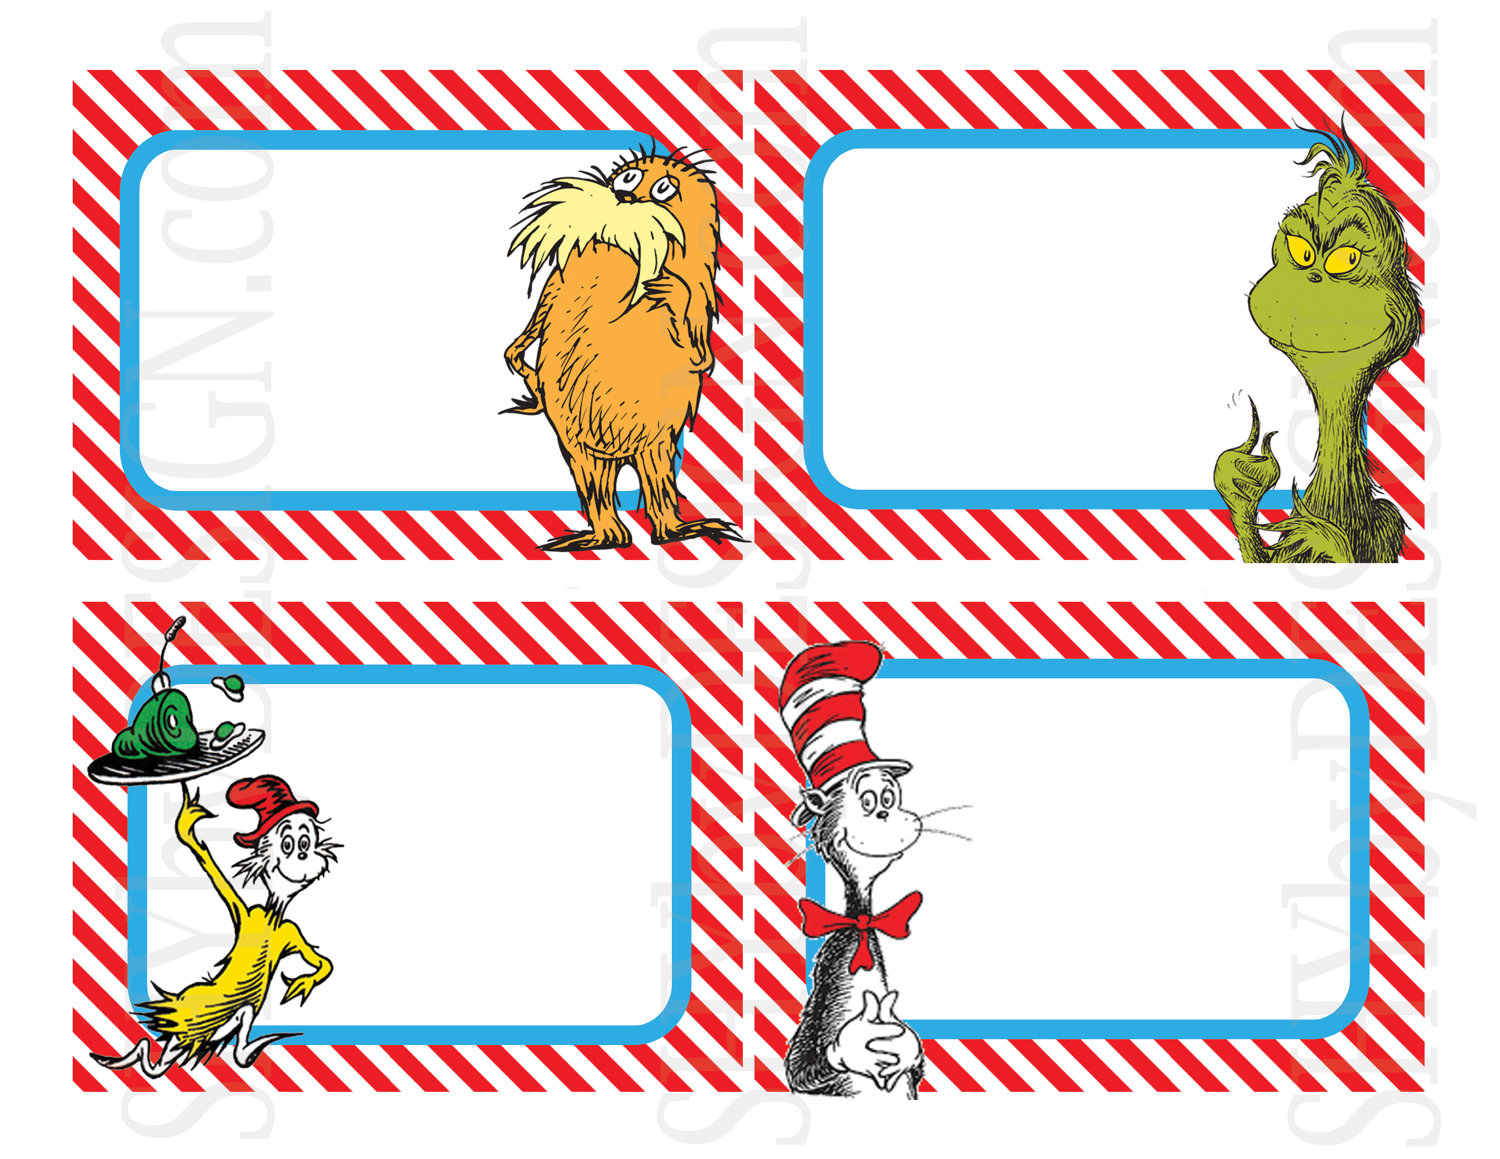 7 Best Images of Dr. Seuss Printable Name Tags - Dr. Seuss ...